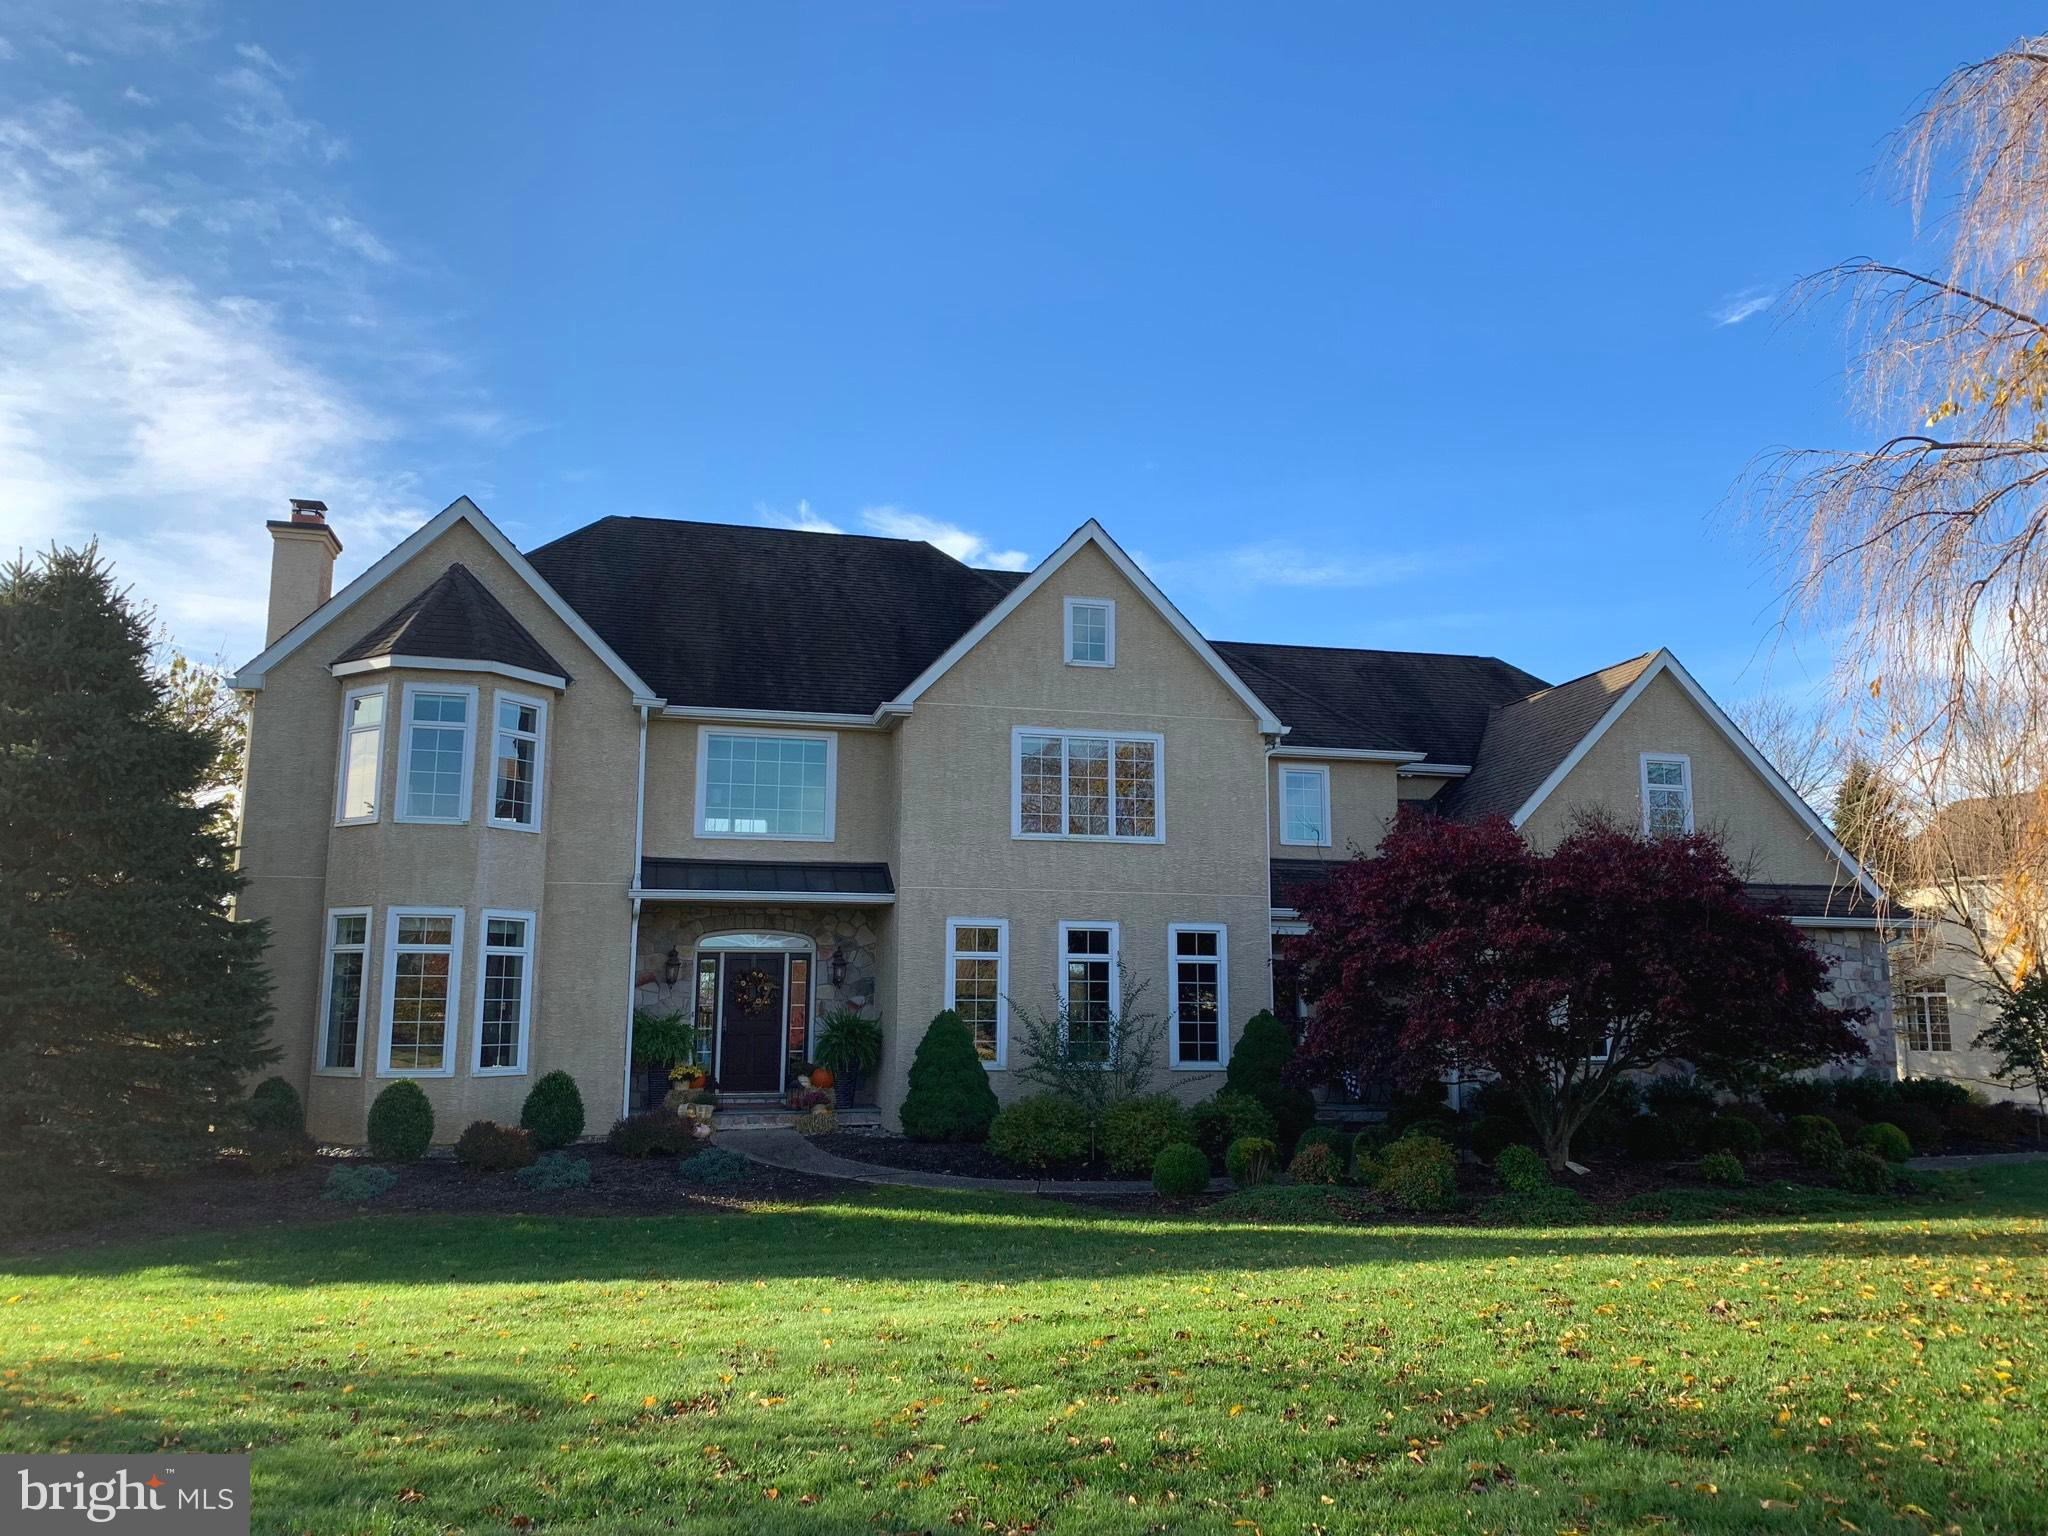 1108 LEGACY LANE, WEST CHESTER, PA 19382